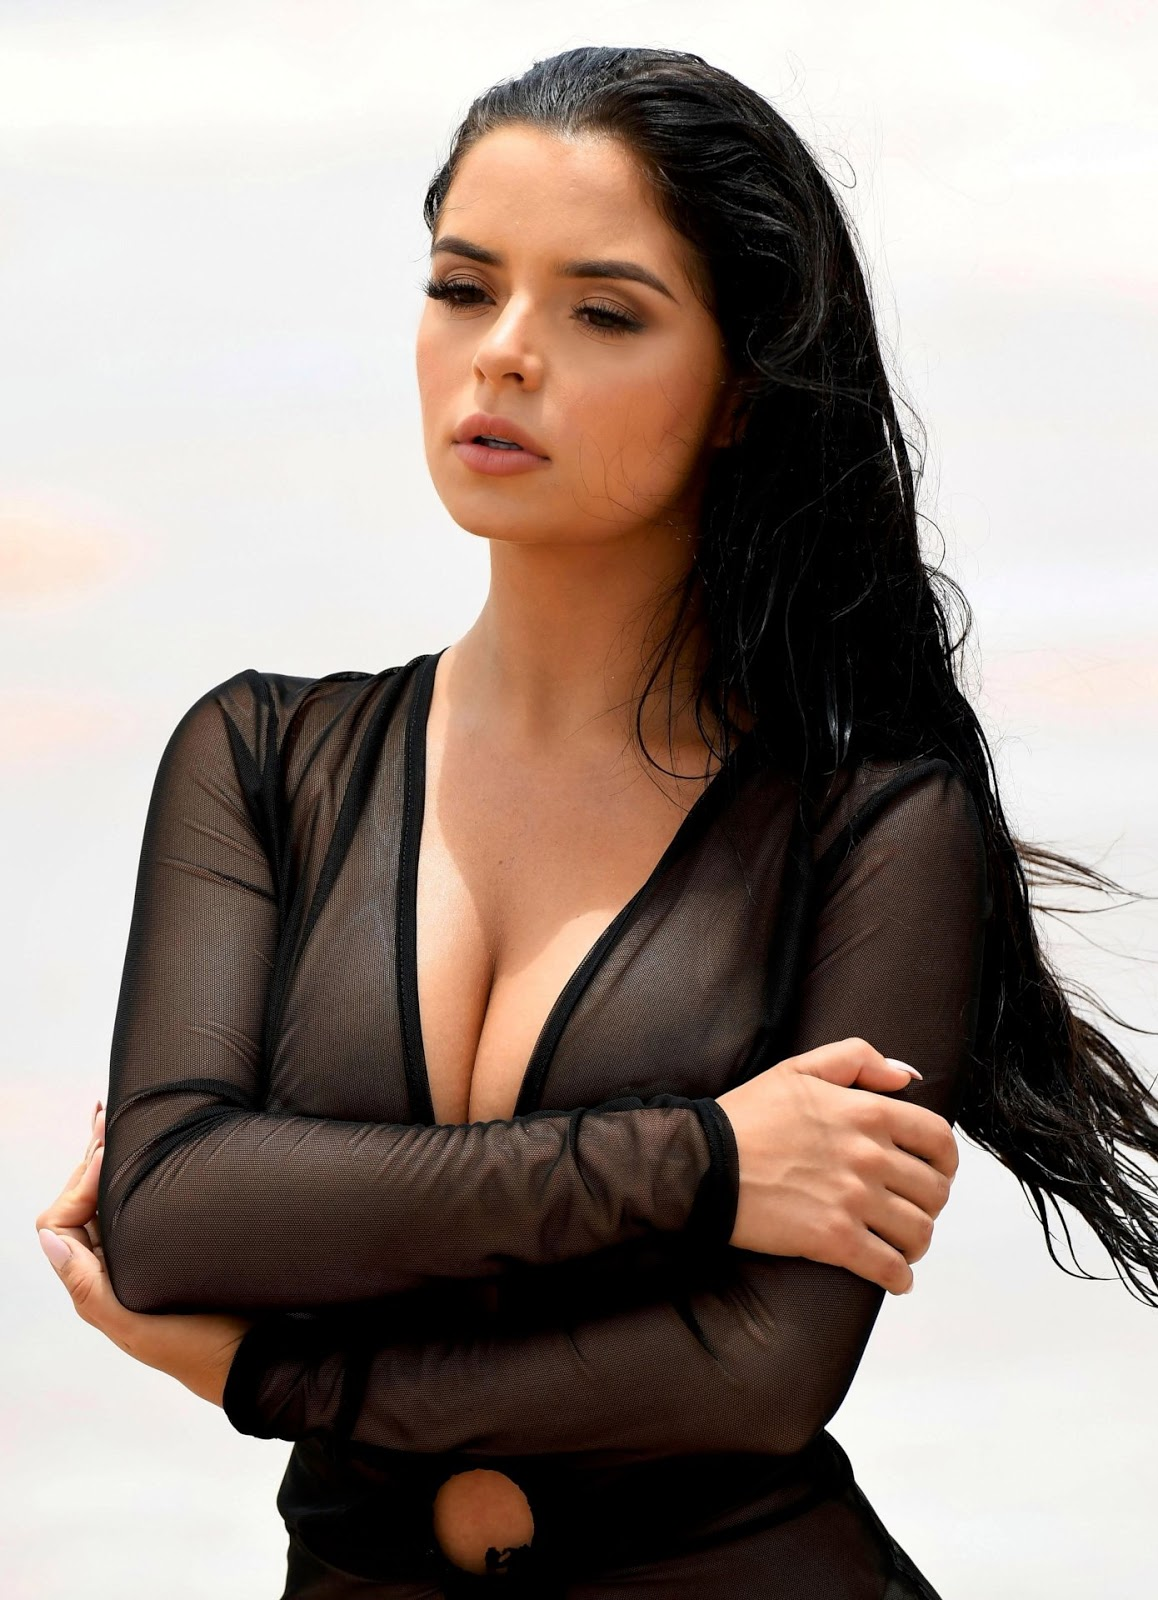 DEMI ROSE MAWBY - NAKED PHOTOSHOOT CANDIDS IN CAPE VERDE